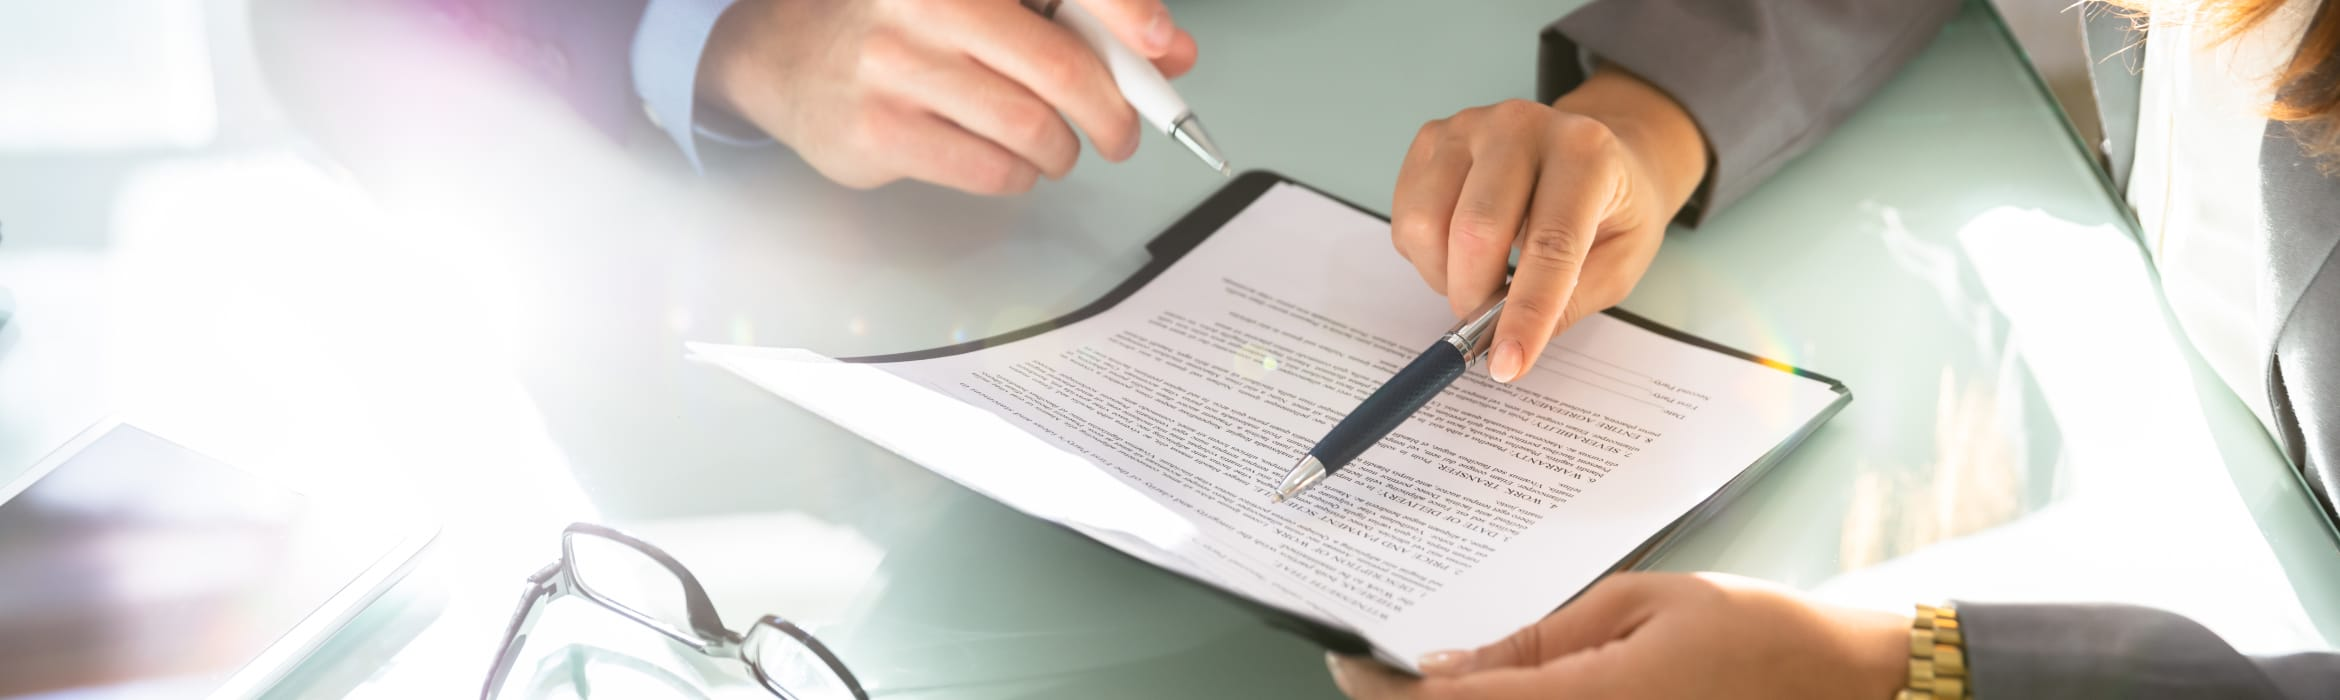 Two solicitors sitting at a table, each holding a pen while pointing to a section in a document